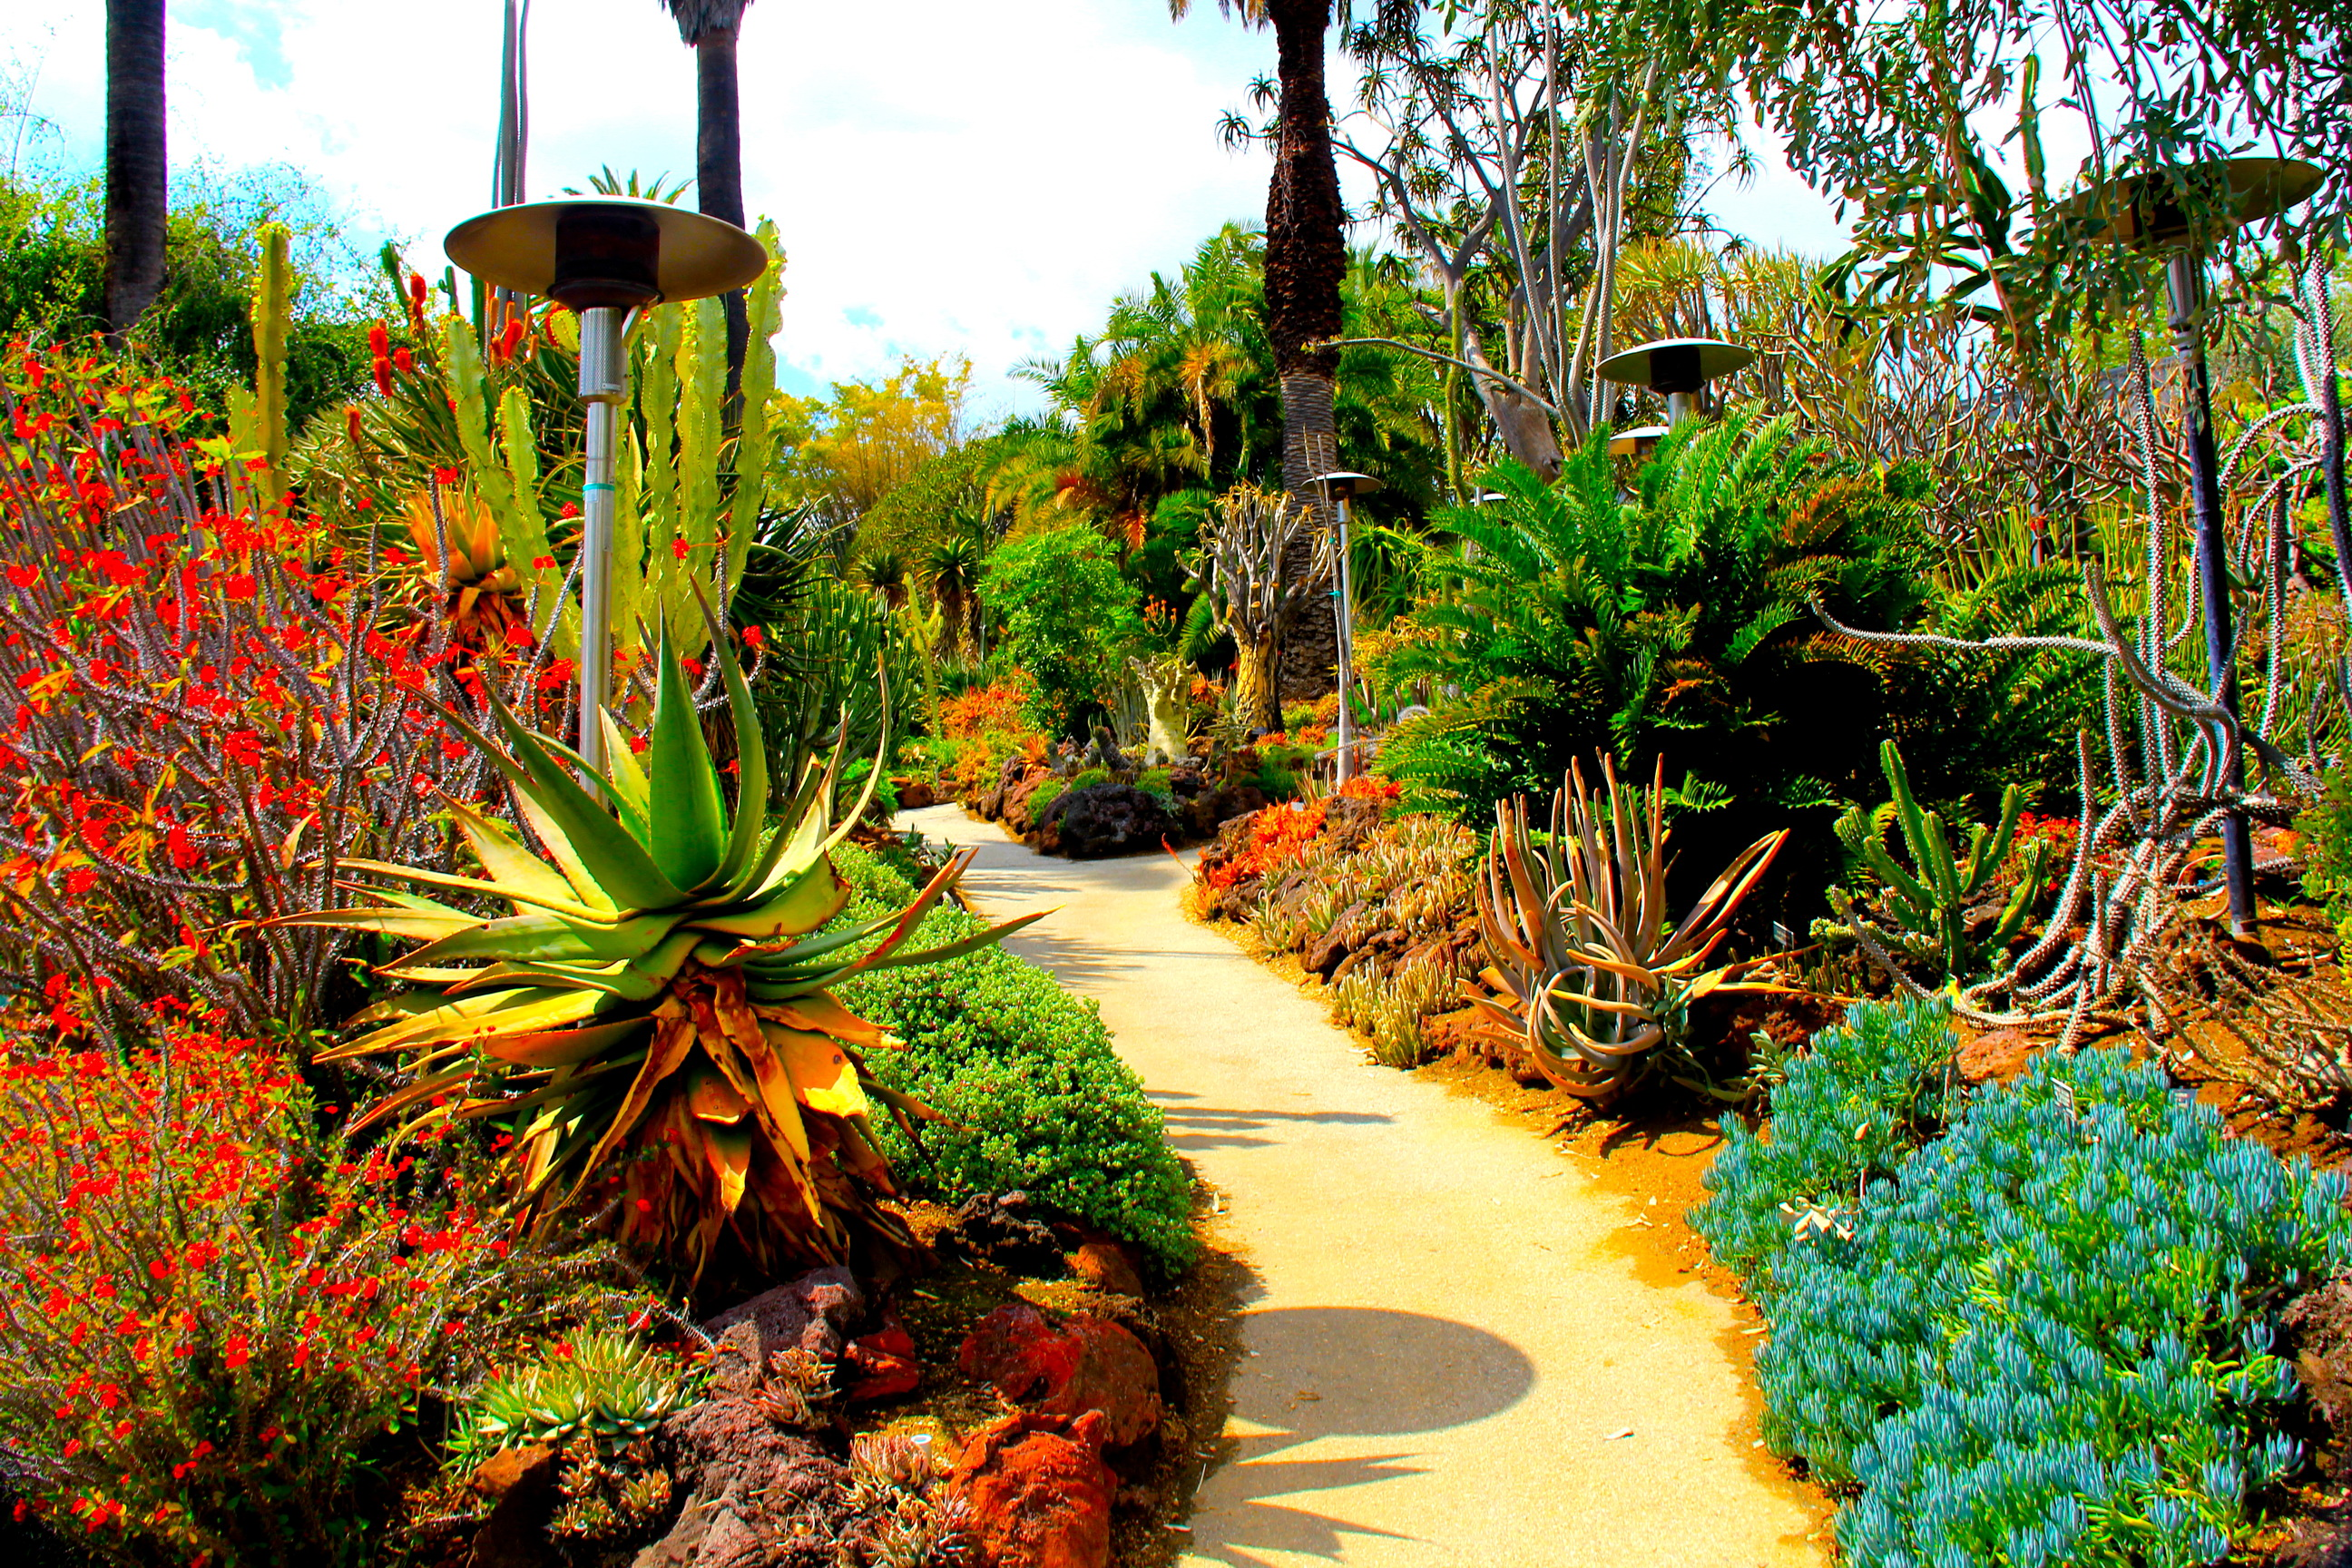 Gardens USA Cactuses Botanical San Marino California Nature Garden  Wallpaper | 2592x1728 | 112757 | WallpaperUP